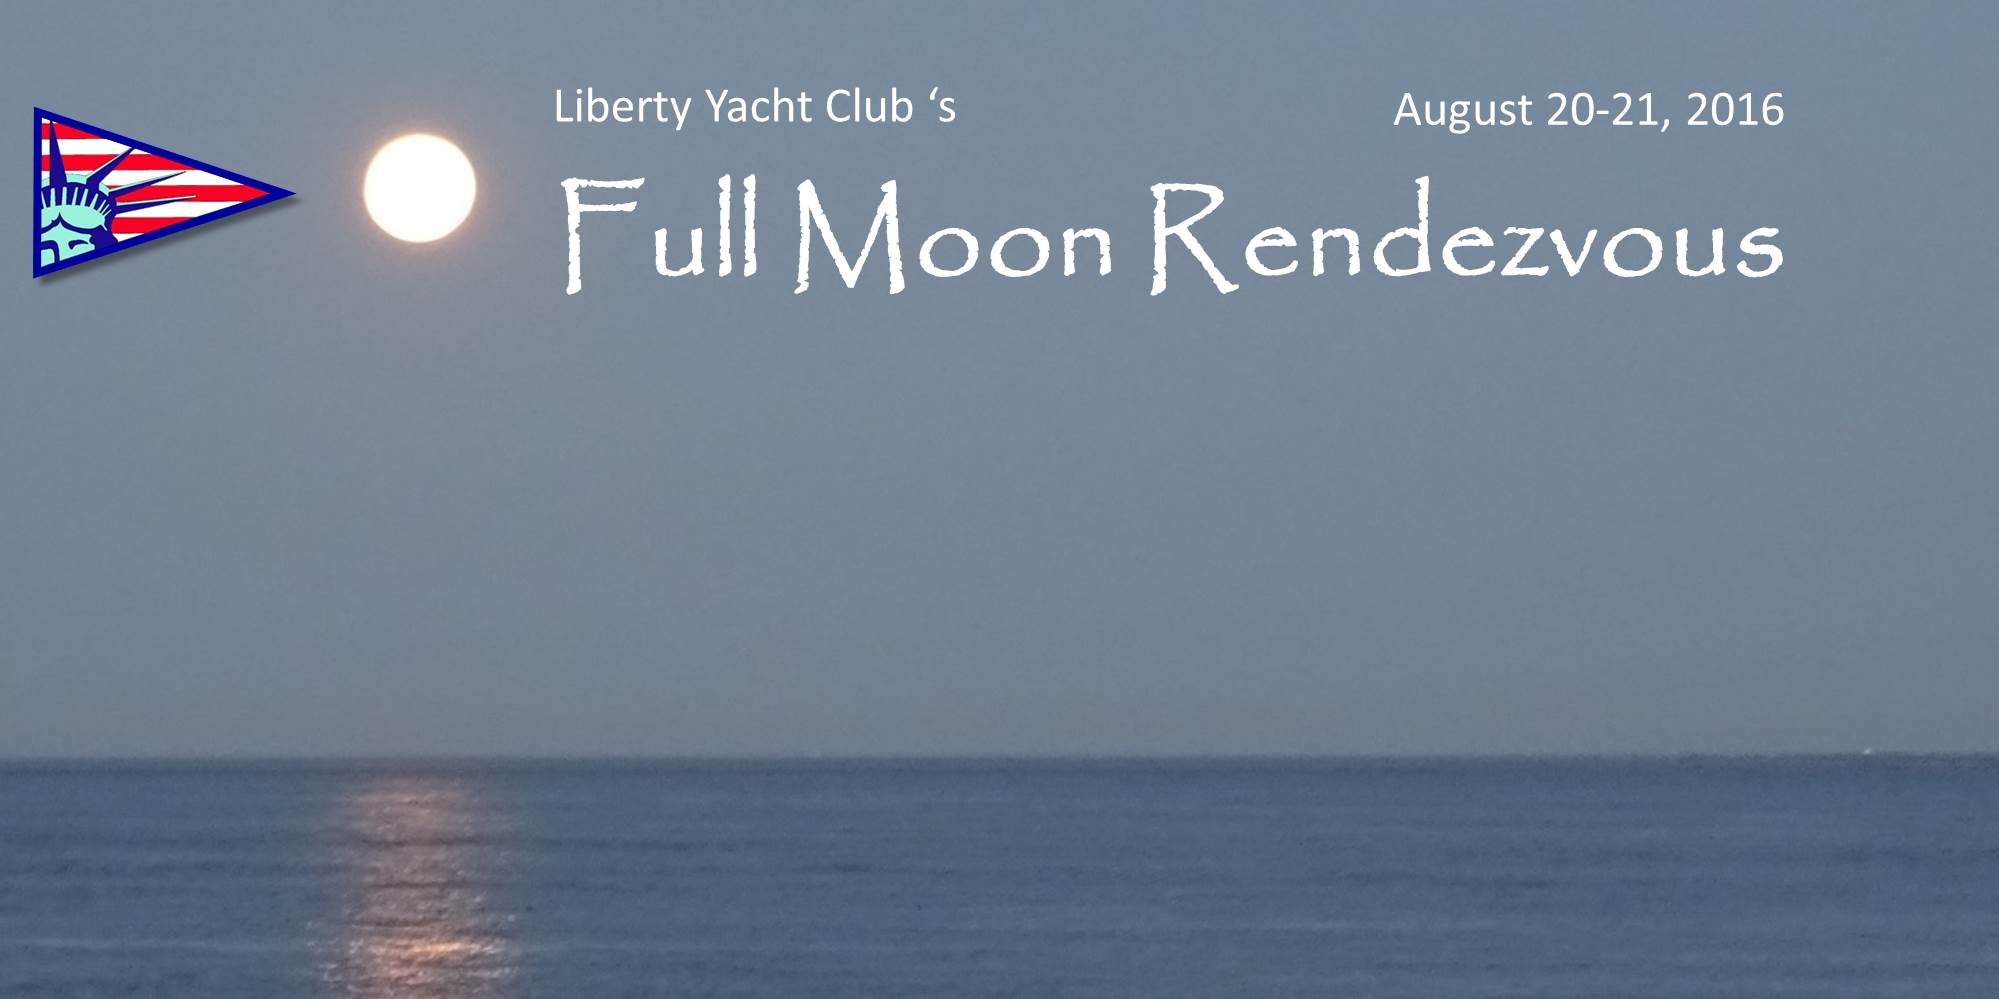 Full Moon Rendezvous